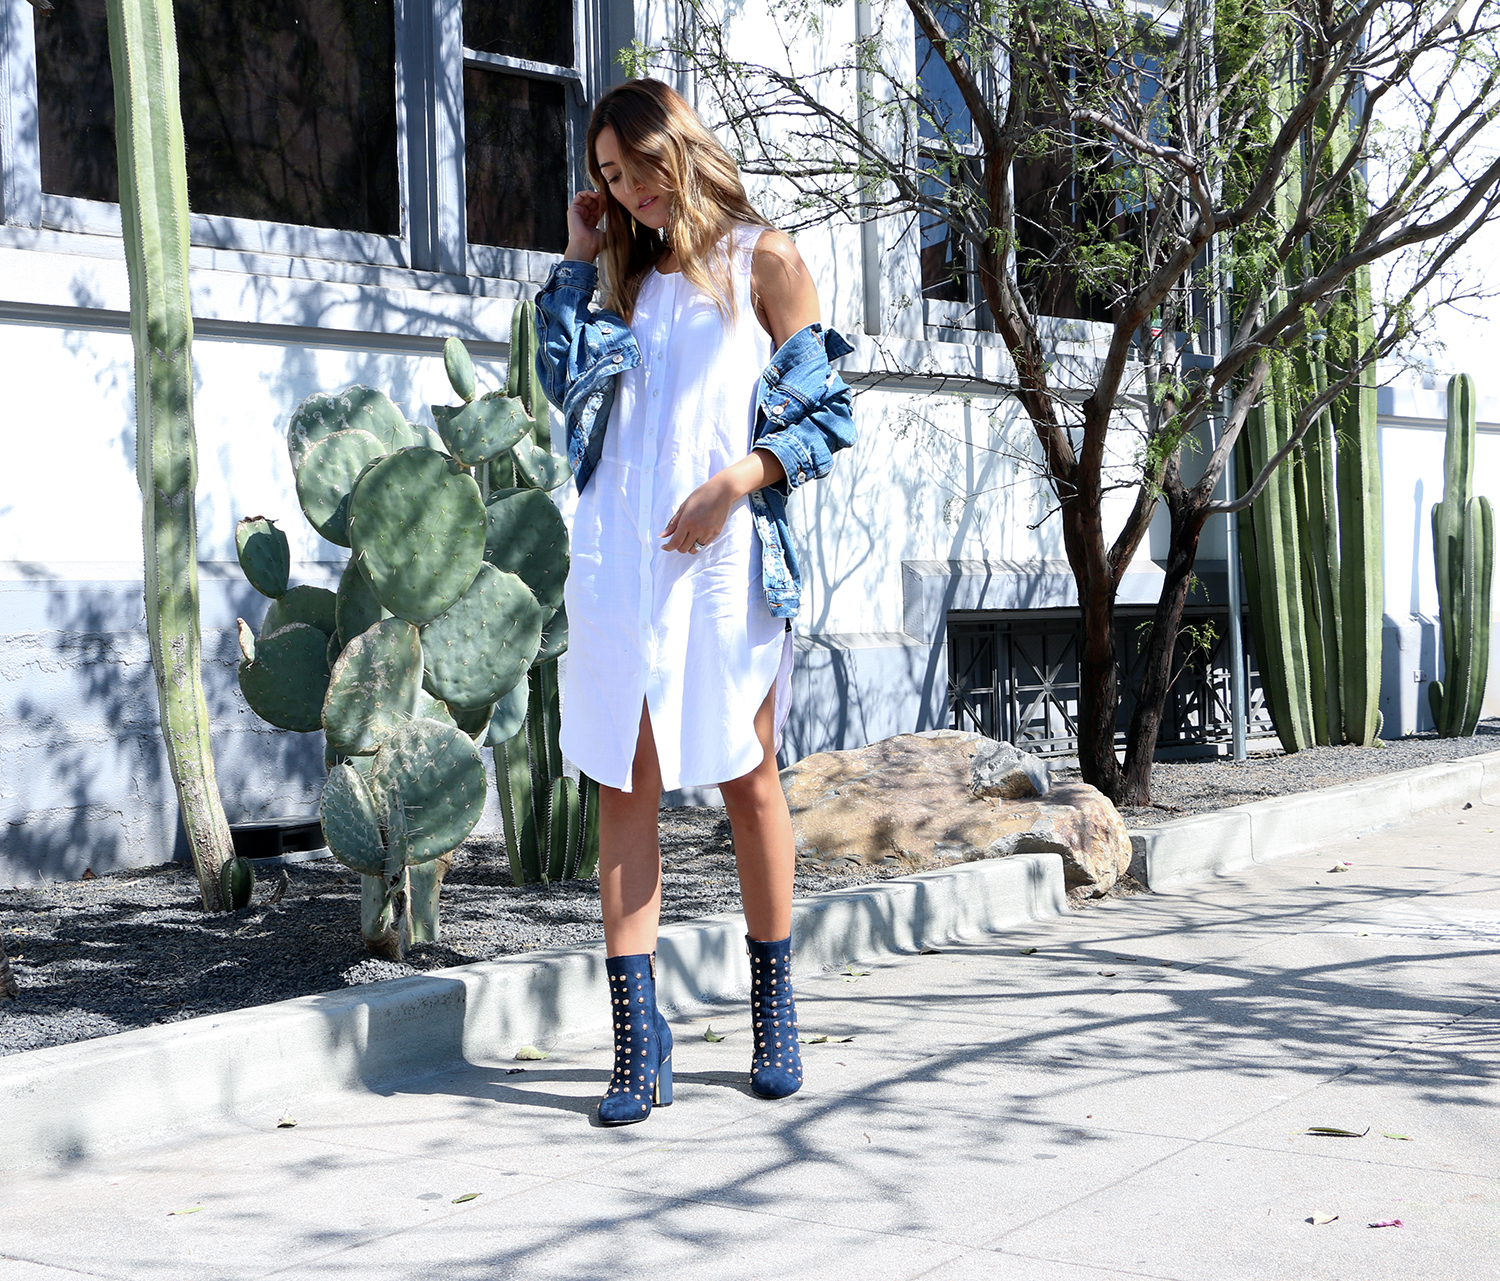 These Boots Were Made For Walking, windsor, ootd, melrodstyle, la blogger, latina blogger, hispanic blogger, mexican blogger, street style, blogger style, inspiration, fashion, trends, style, outfit